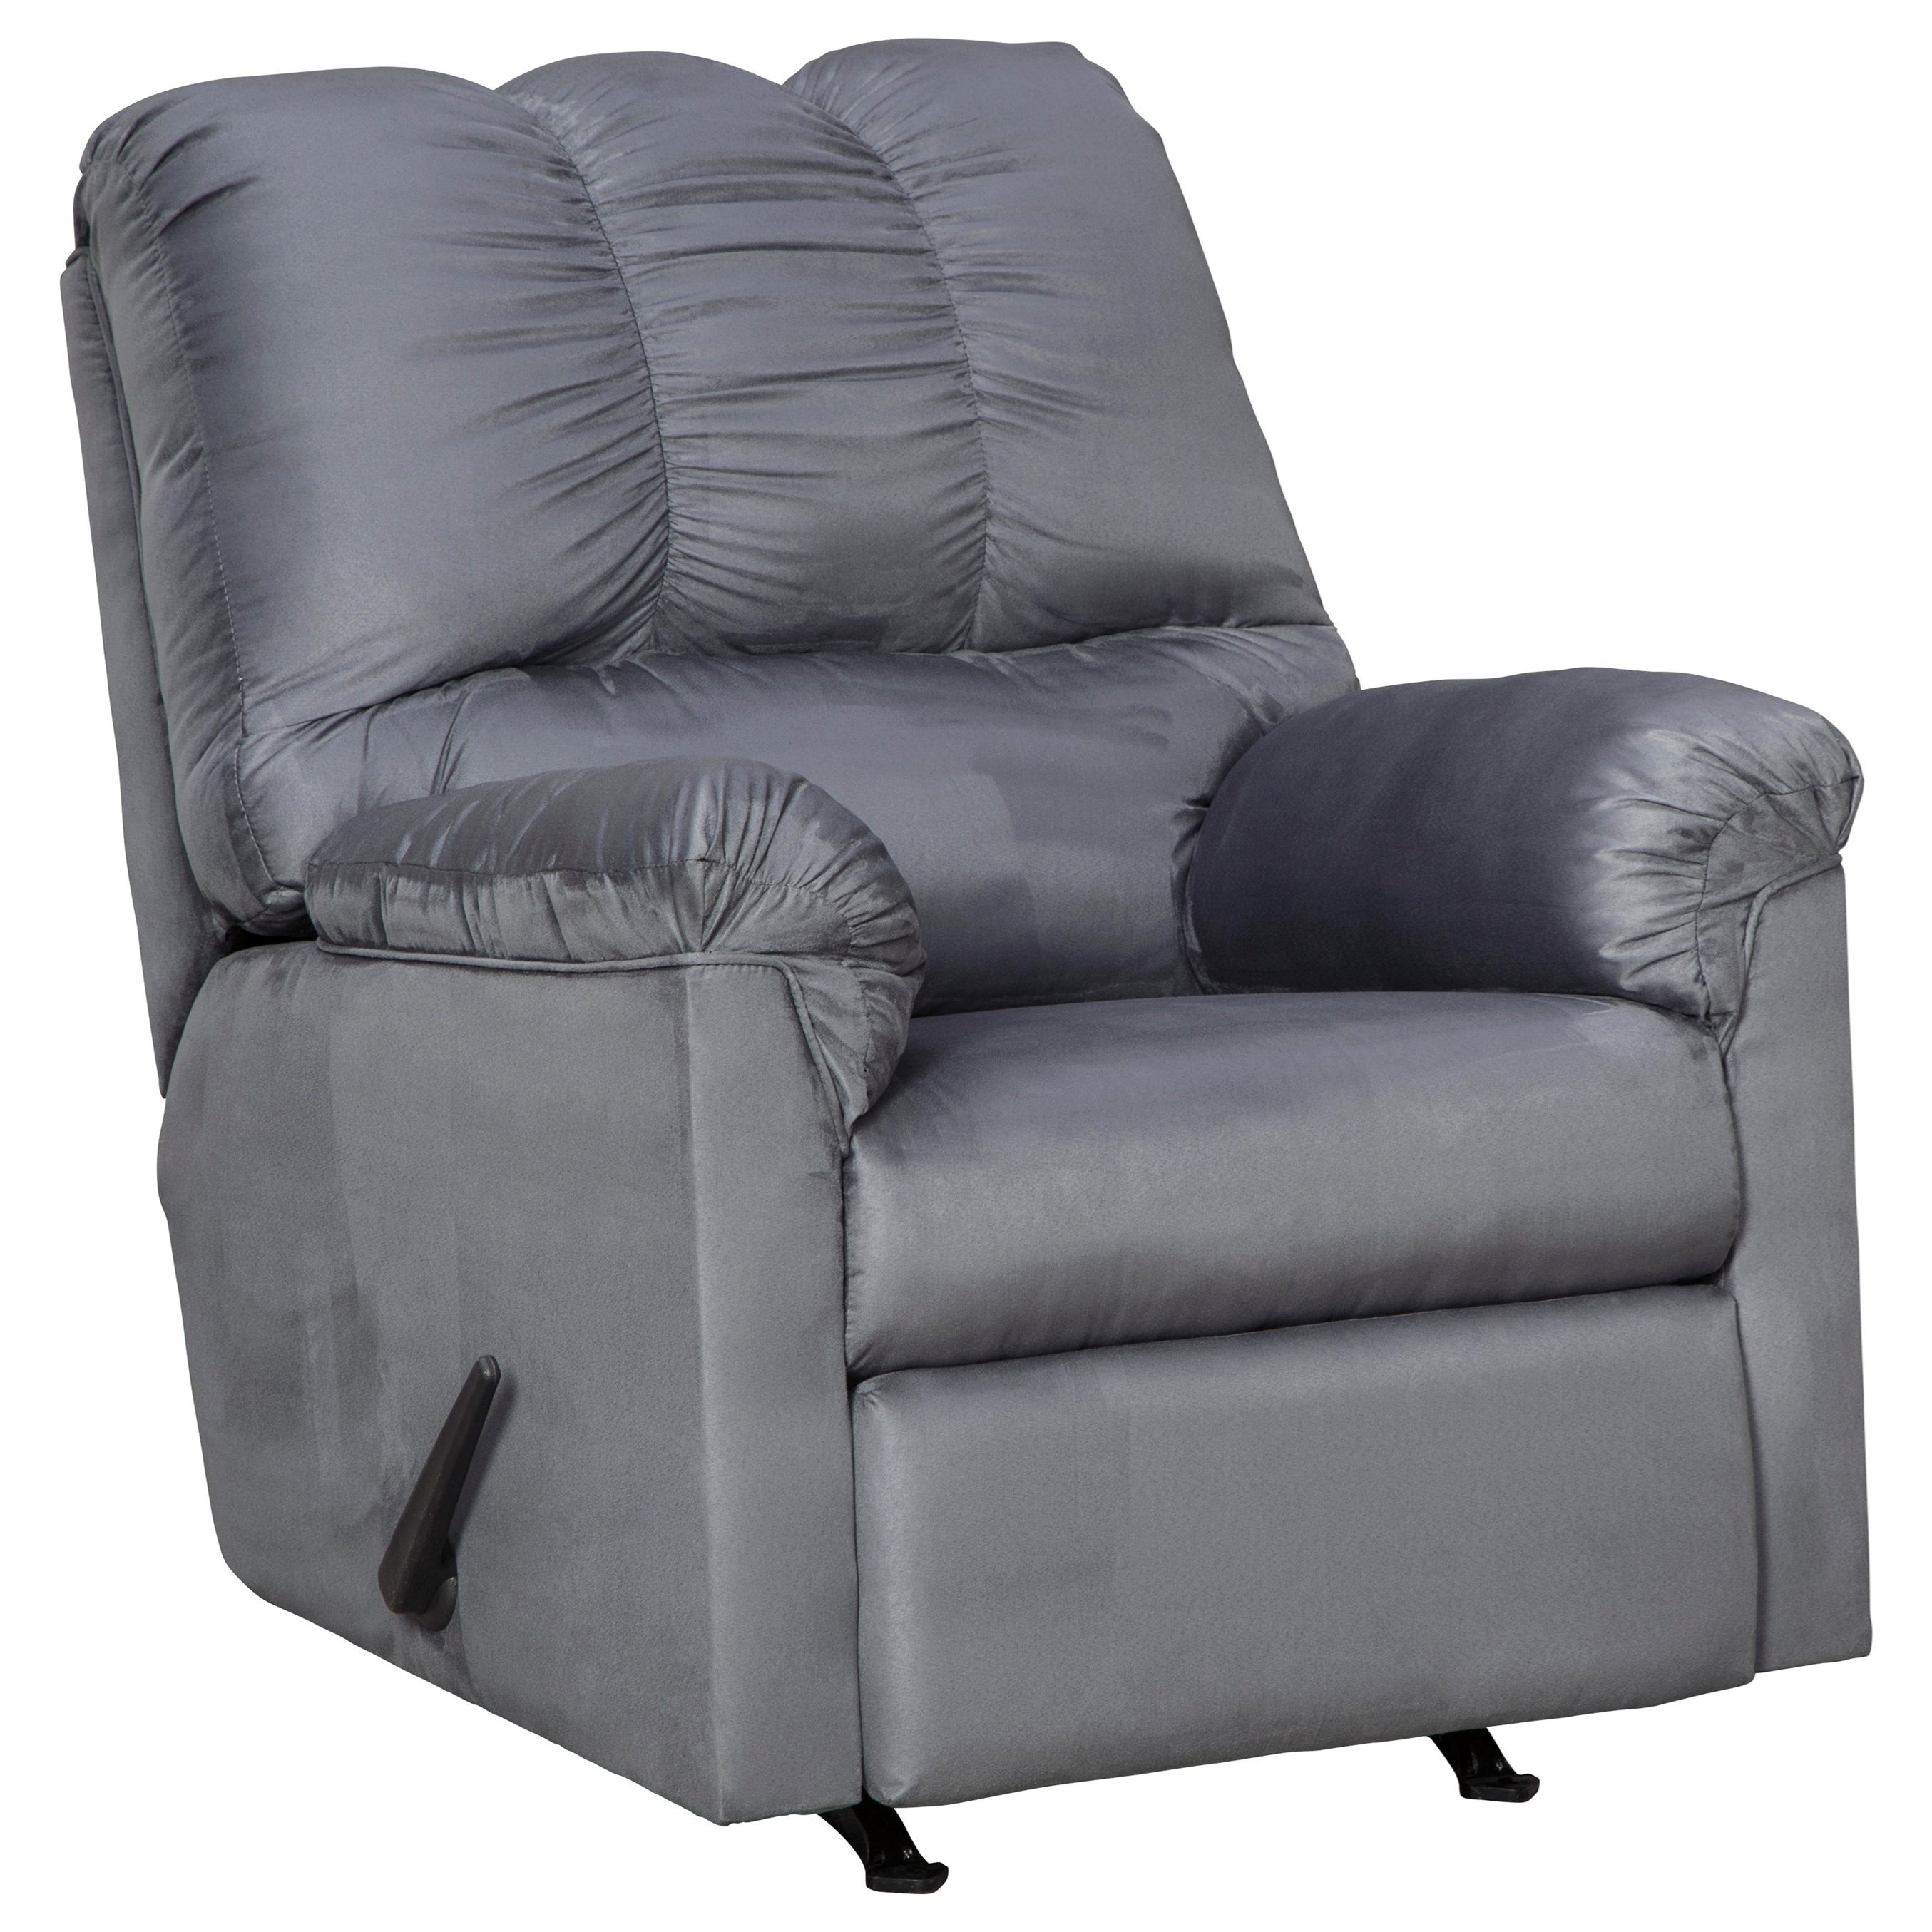 Darcy - Steel Rocker Recliner by Signature Design by Ashley at Zak's Warehouse Clearance Center